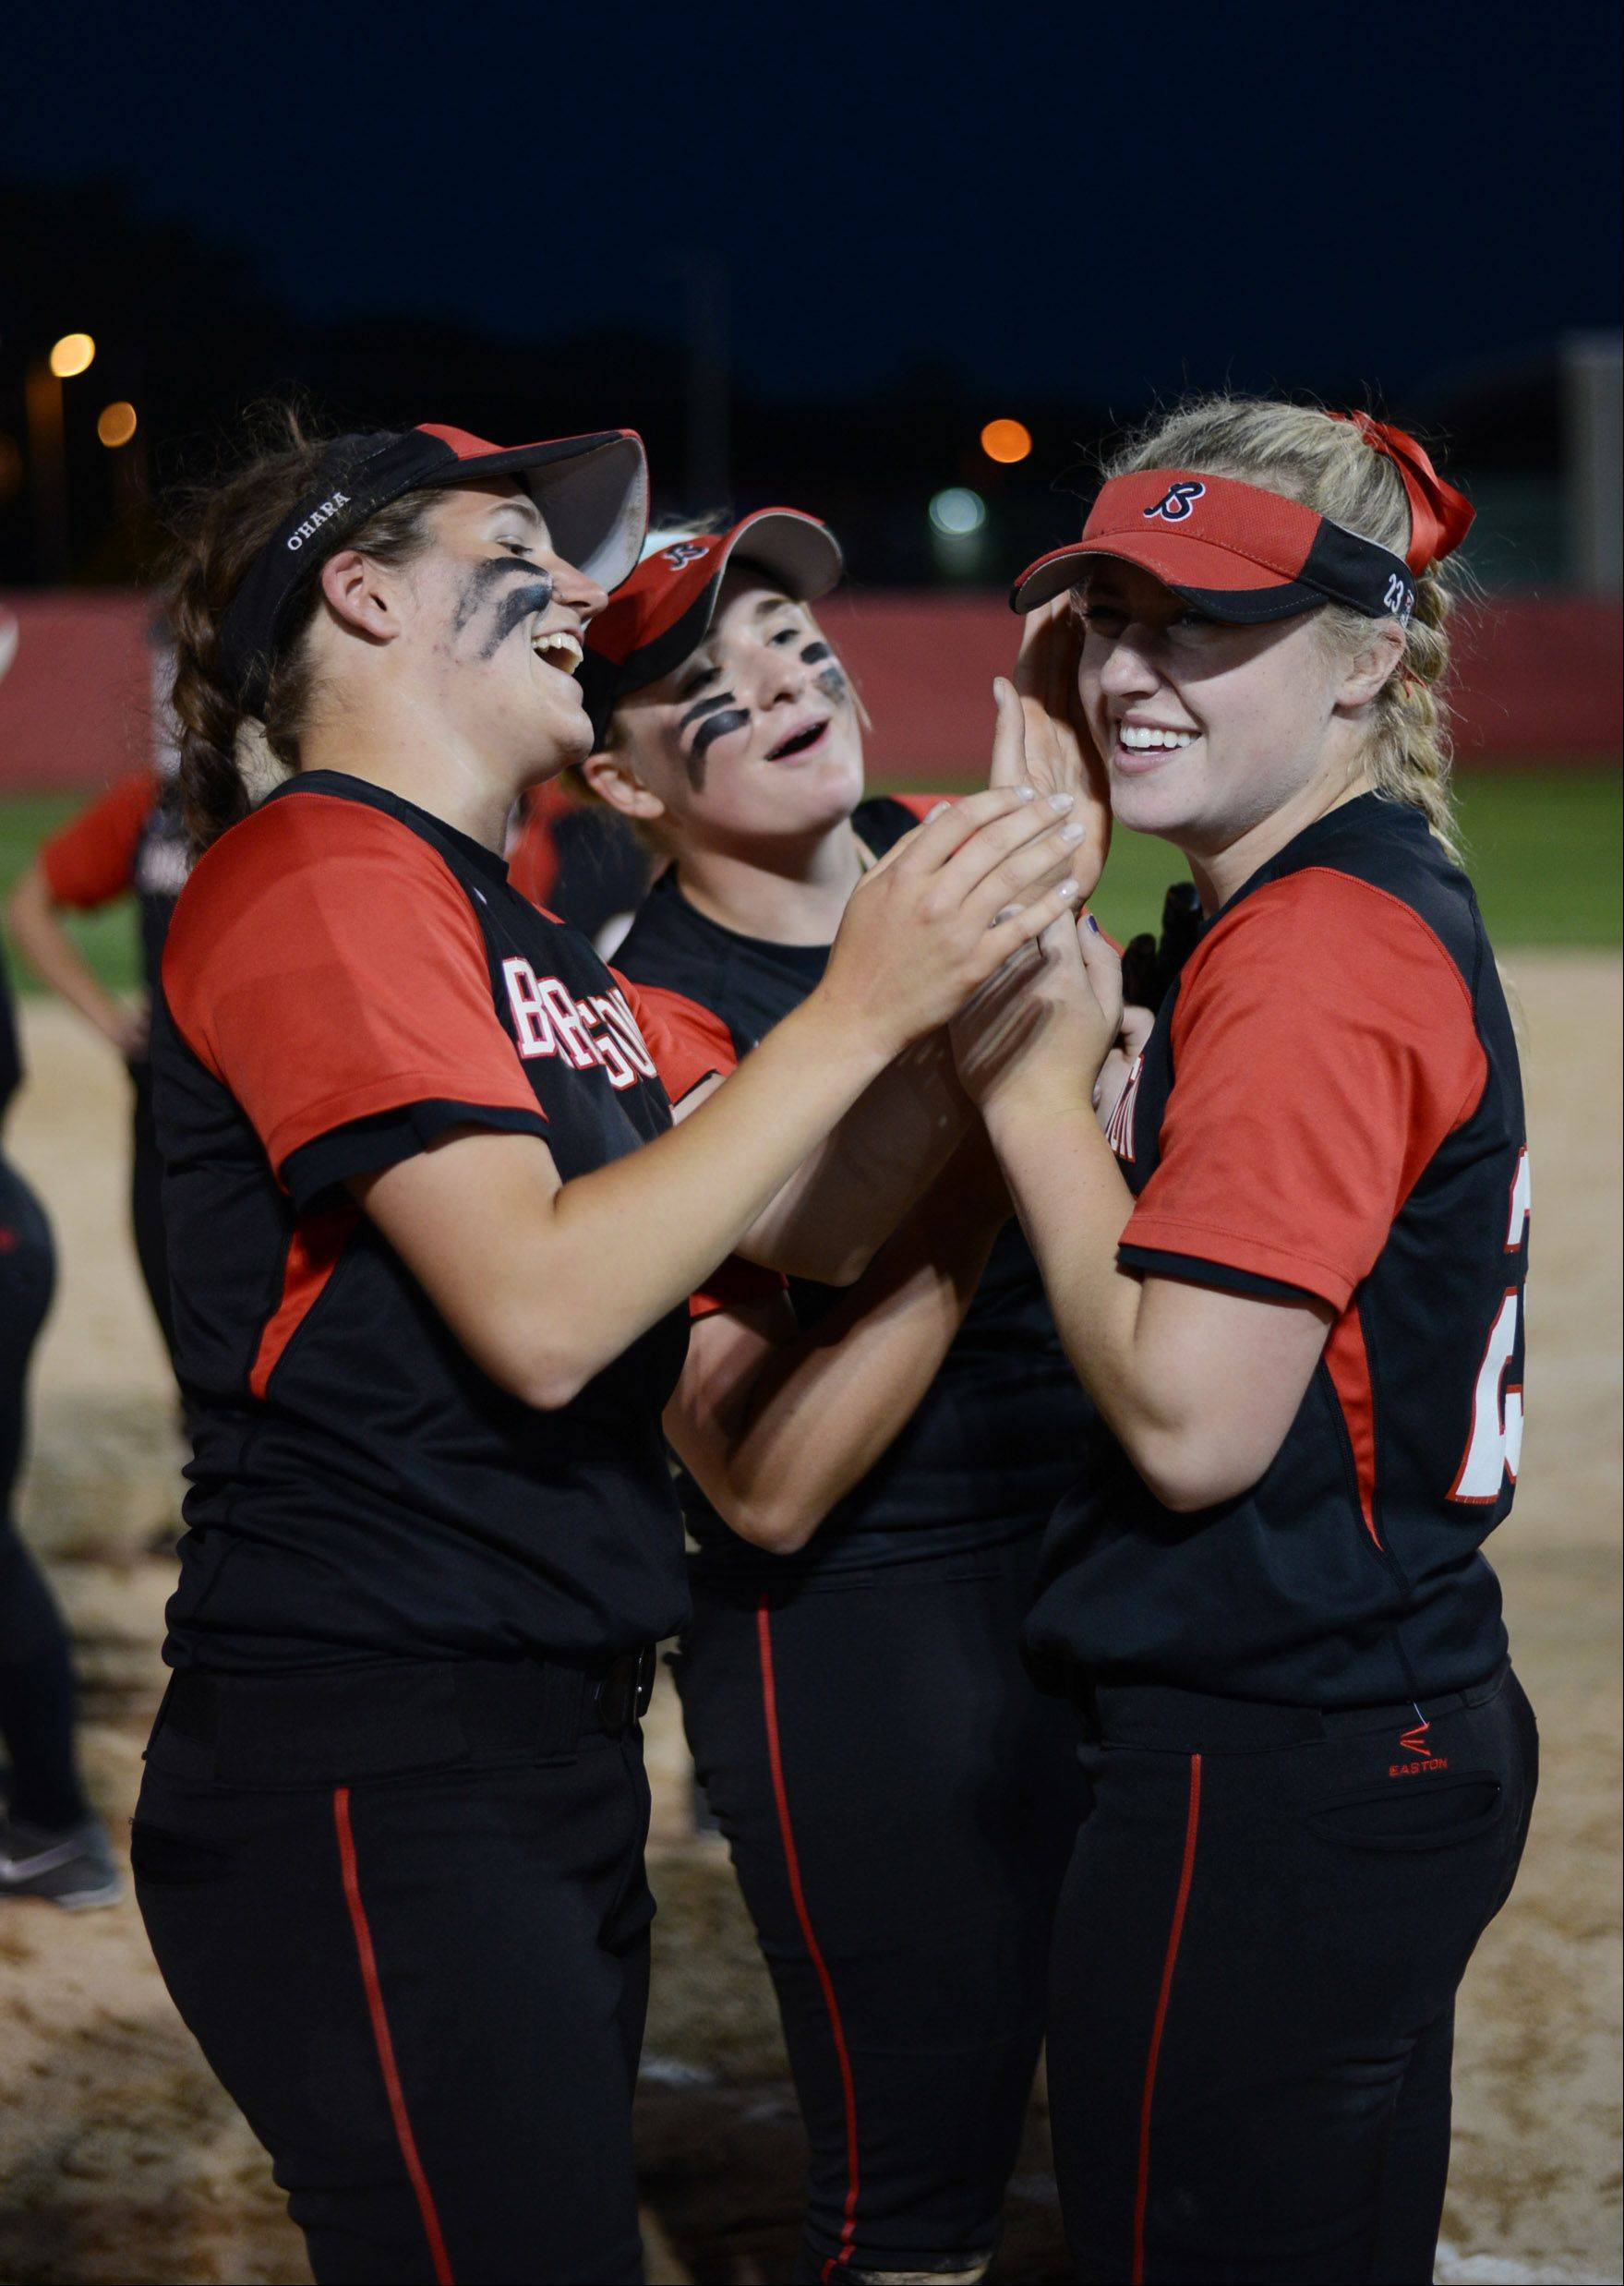 Barrington's Maggie O'Hara, Tess Bolger and Morgan Olszewski shed happy tears after defeating Warren in Monday's Class 4A supersectional softball game.